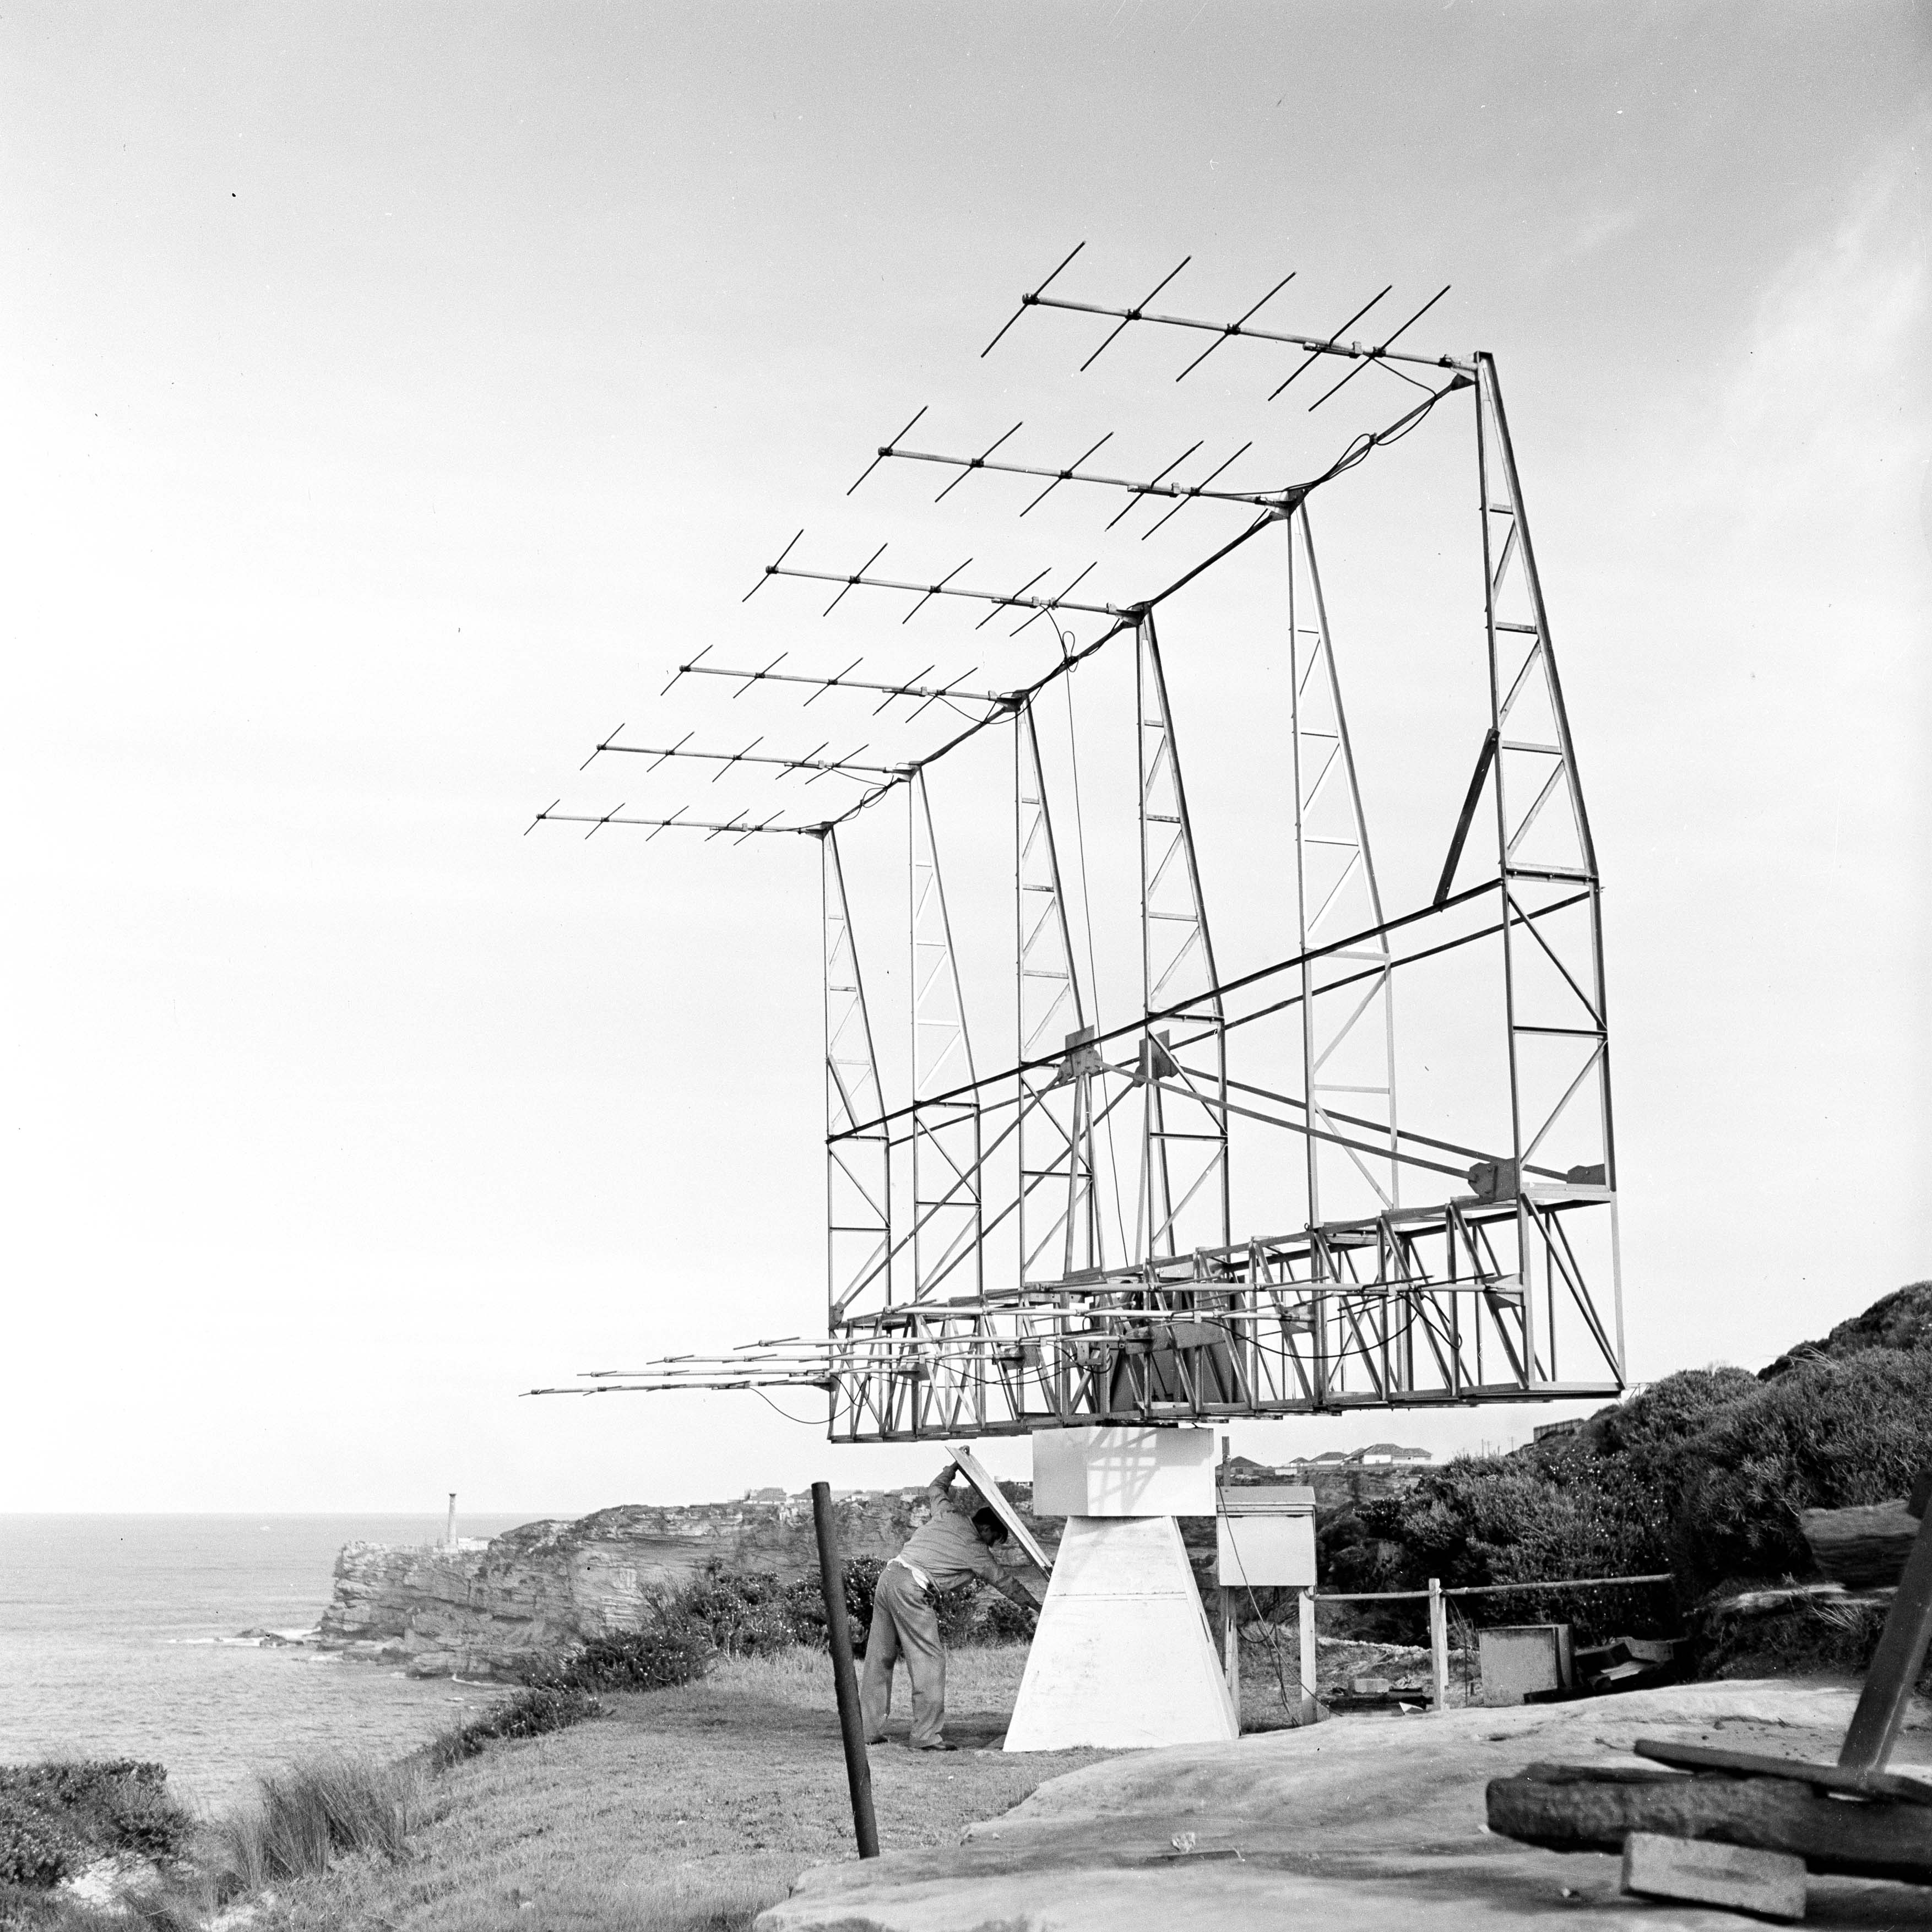 The 12 element Yagi array at Dover Heights (1952)